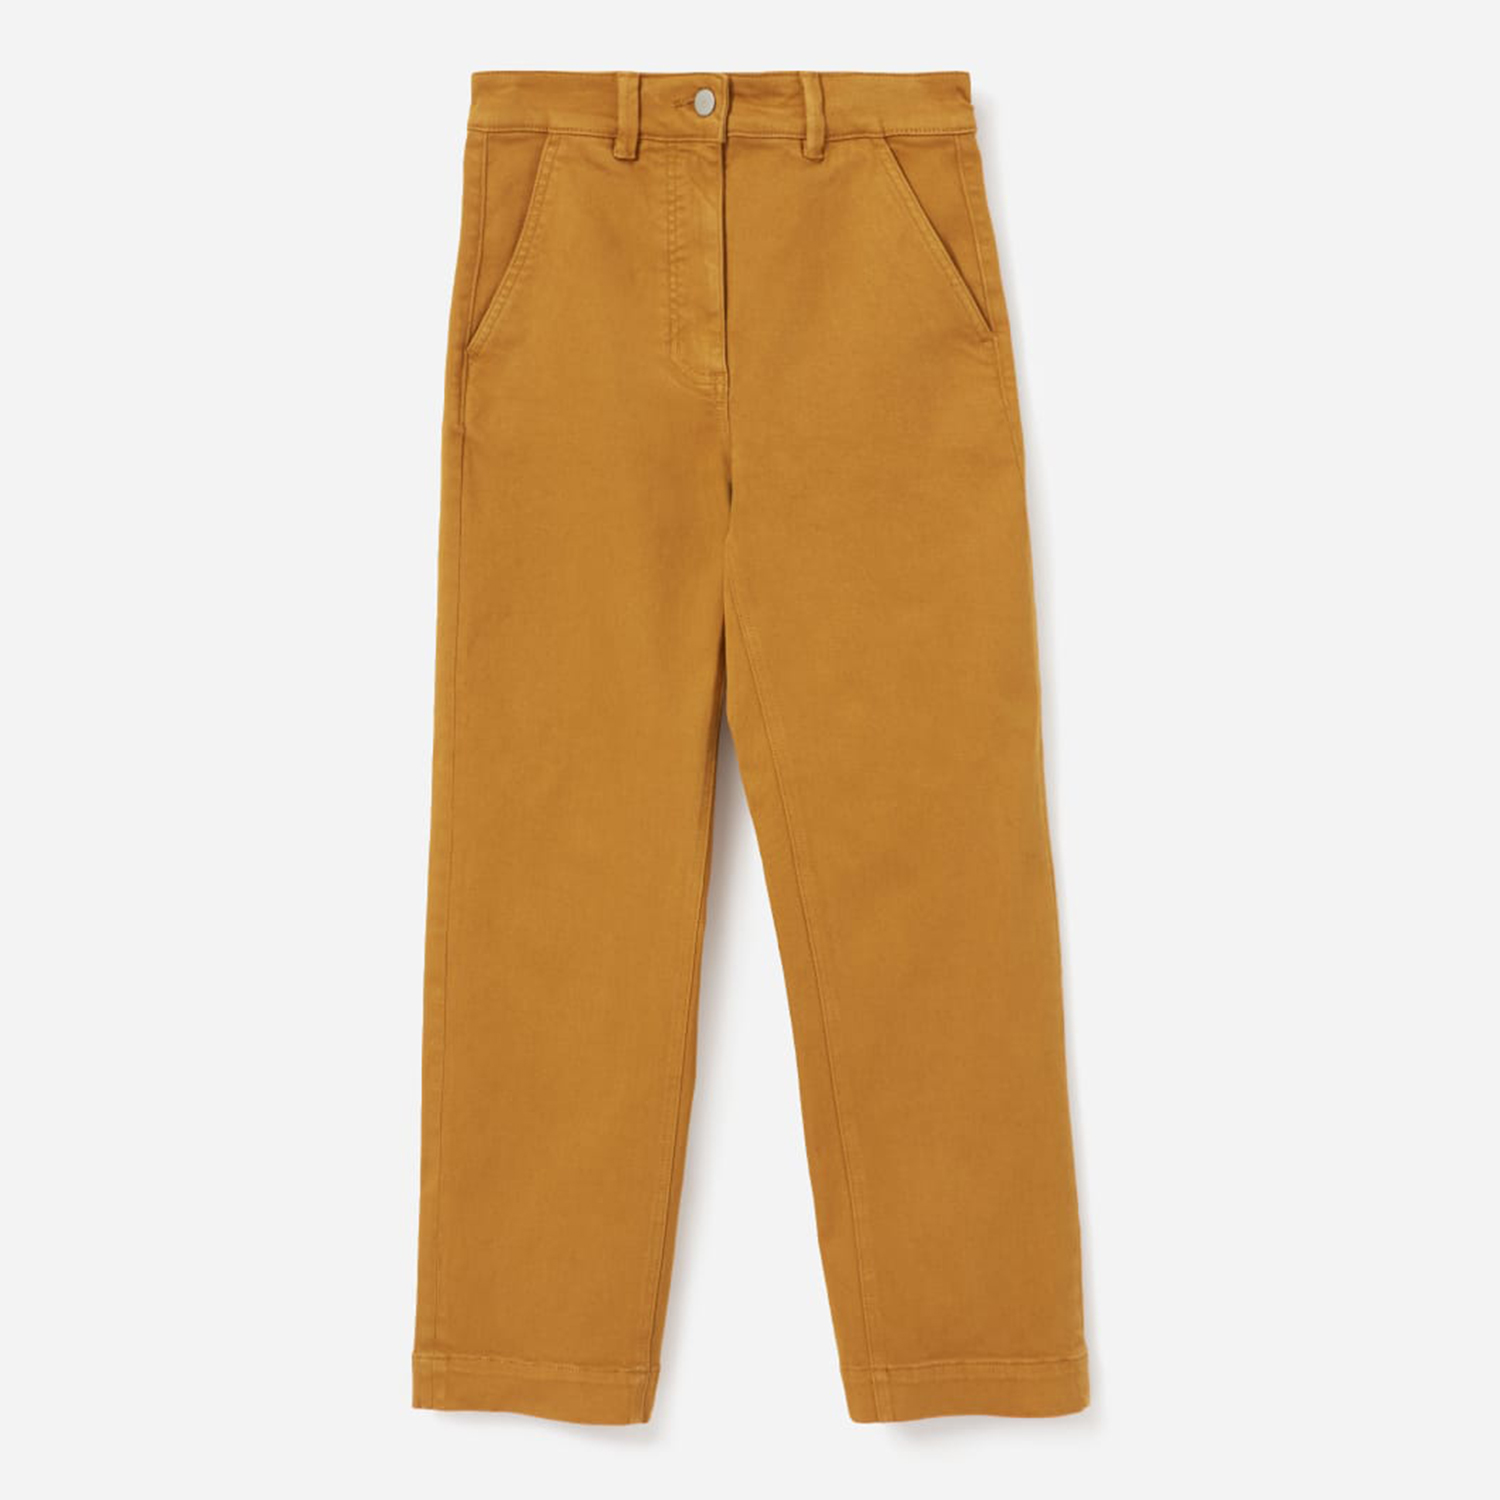 Everlane Straight Leg Crop Golden Brown Pants